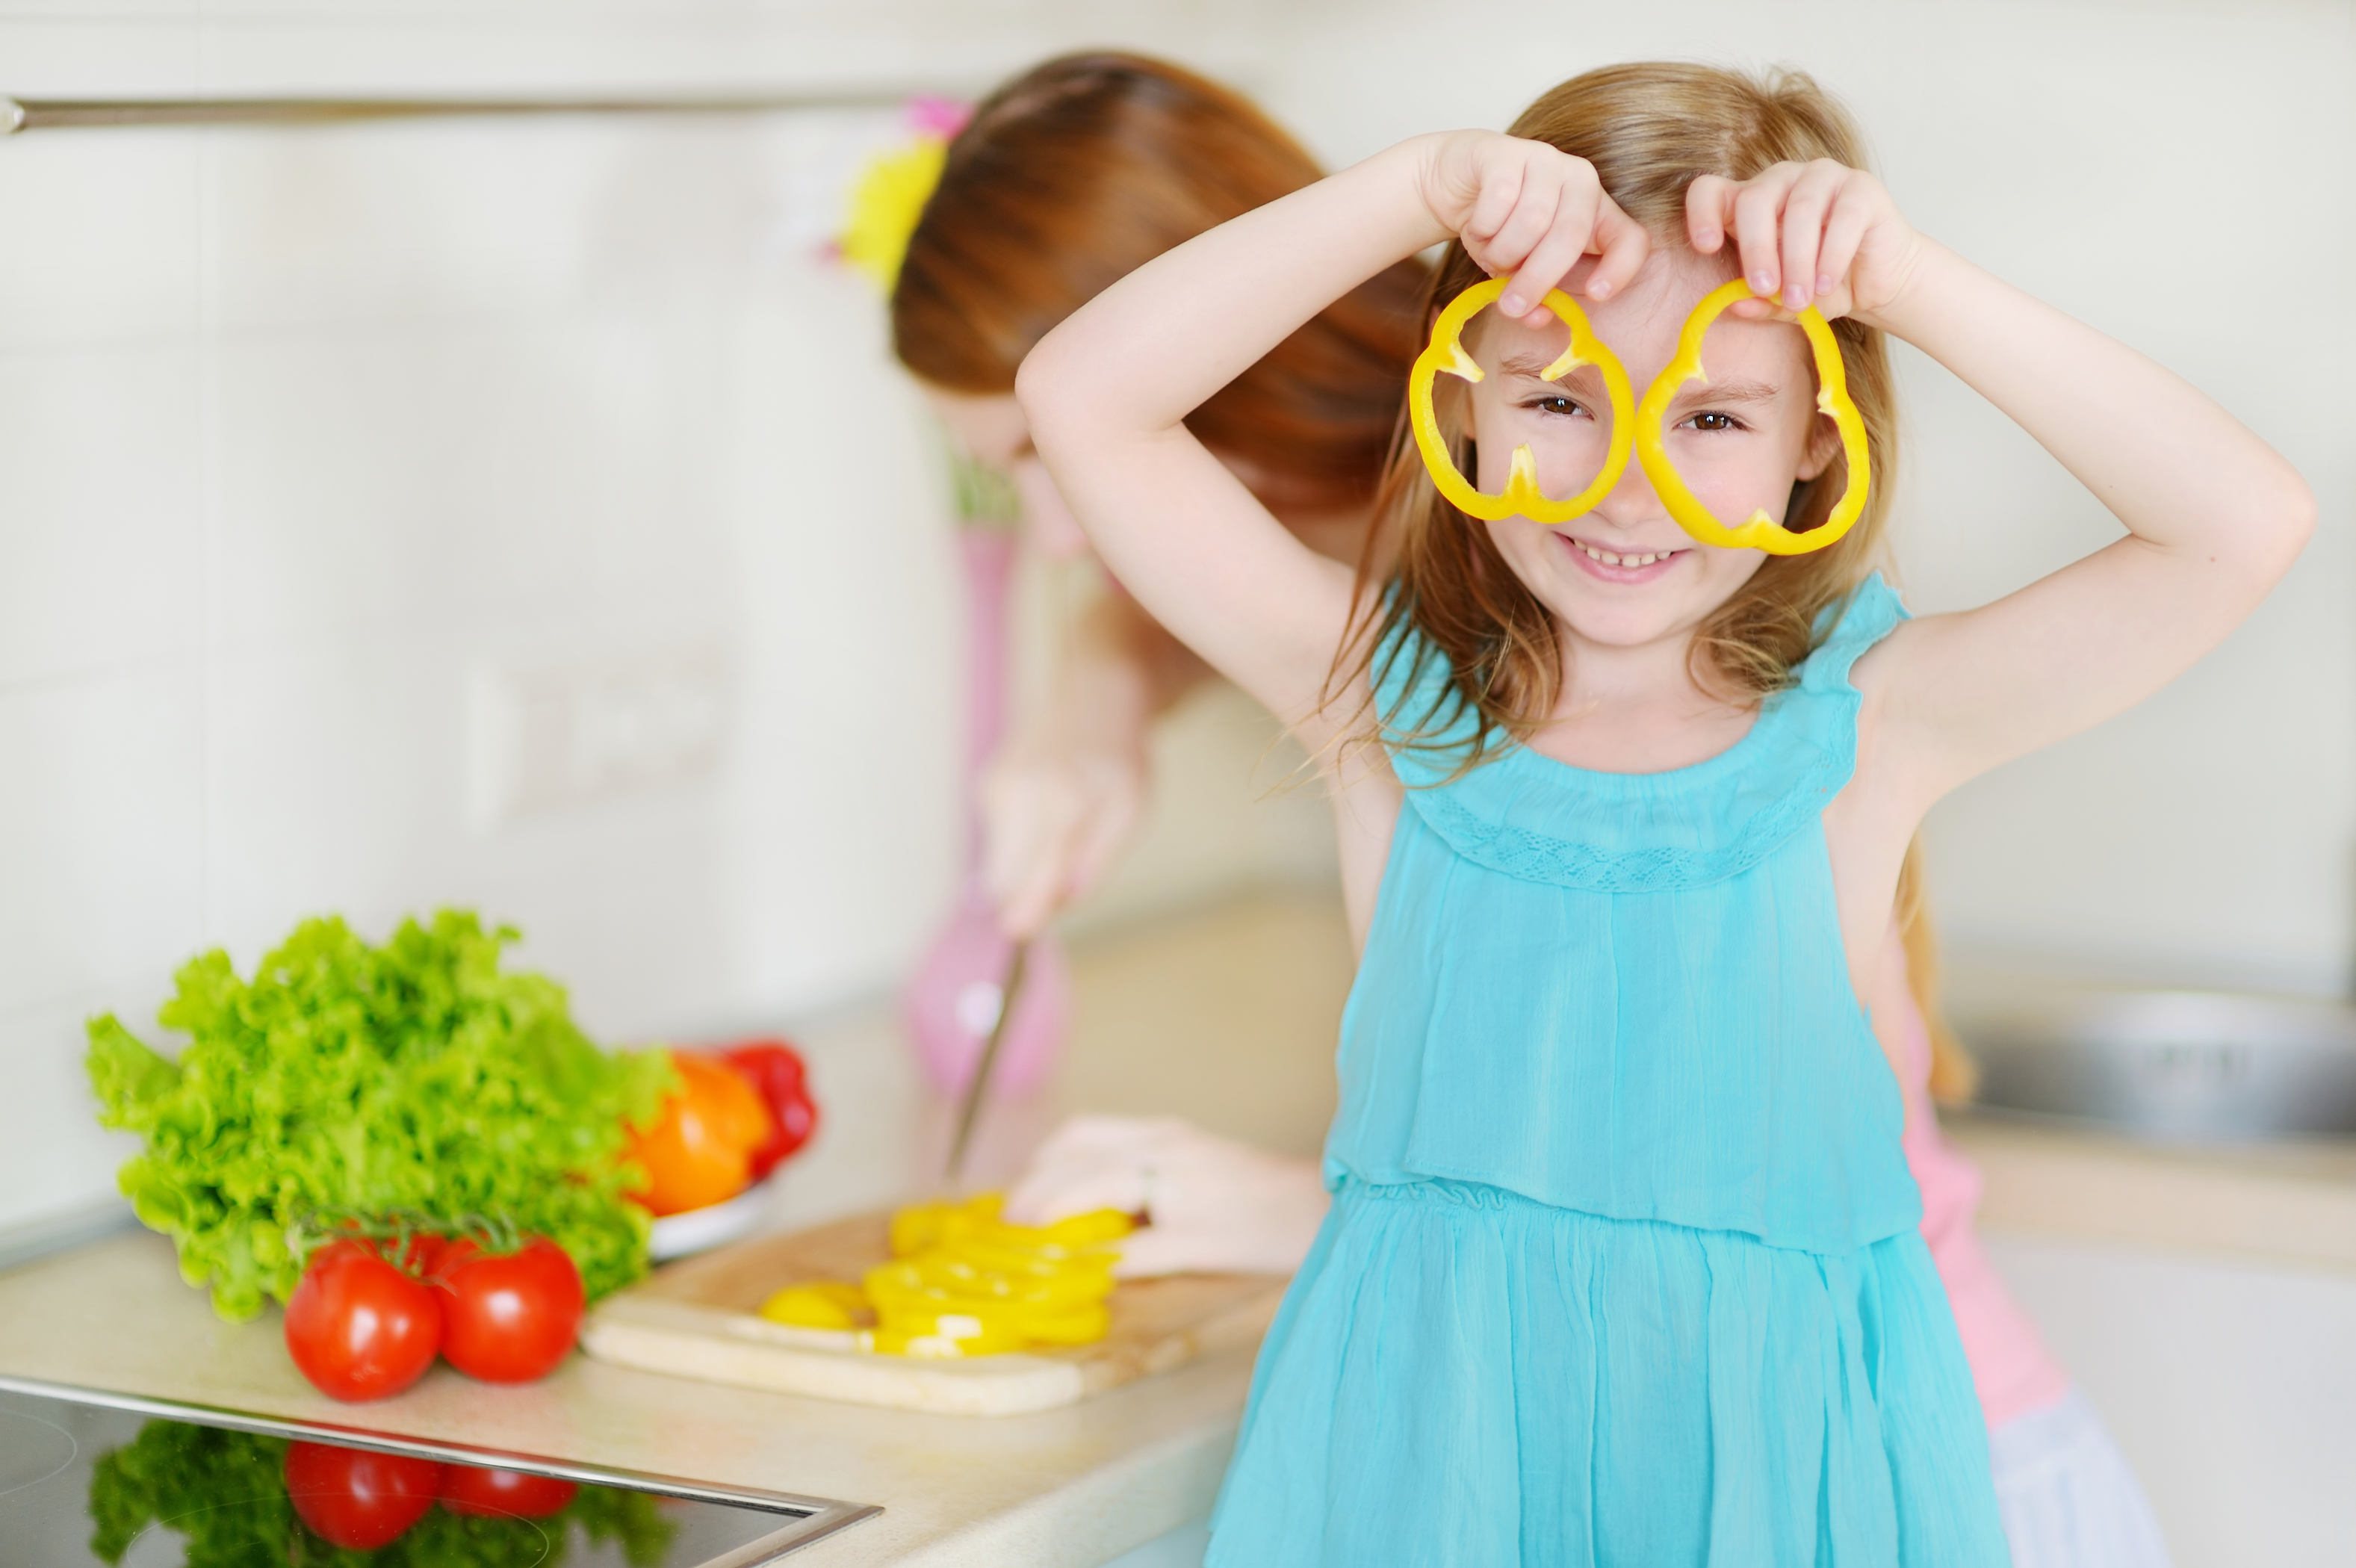 Small girl pretending sliced peppers are glasses while mom cuts more in background.